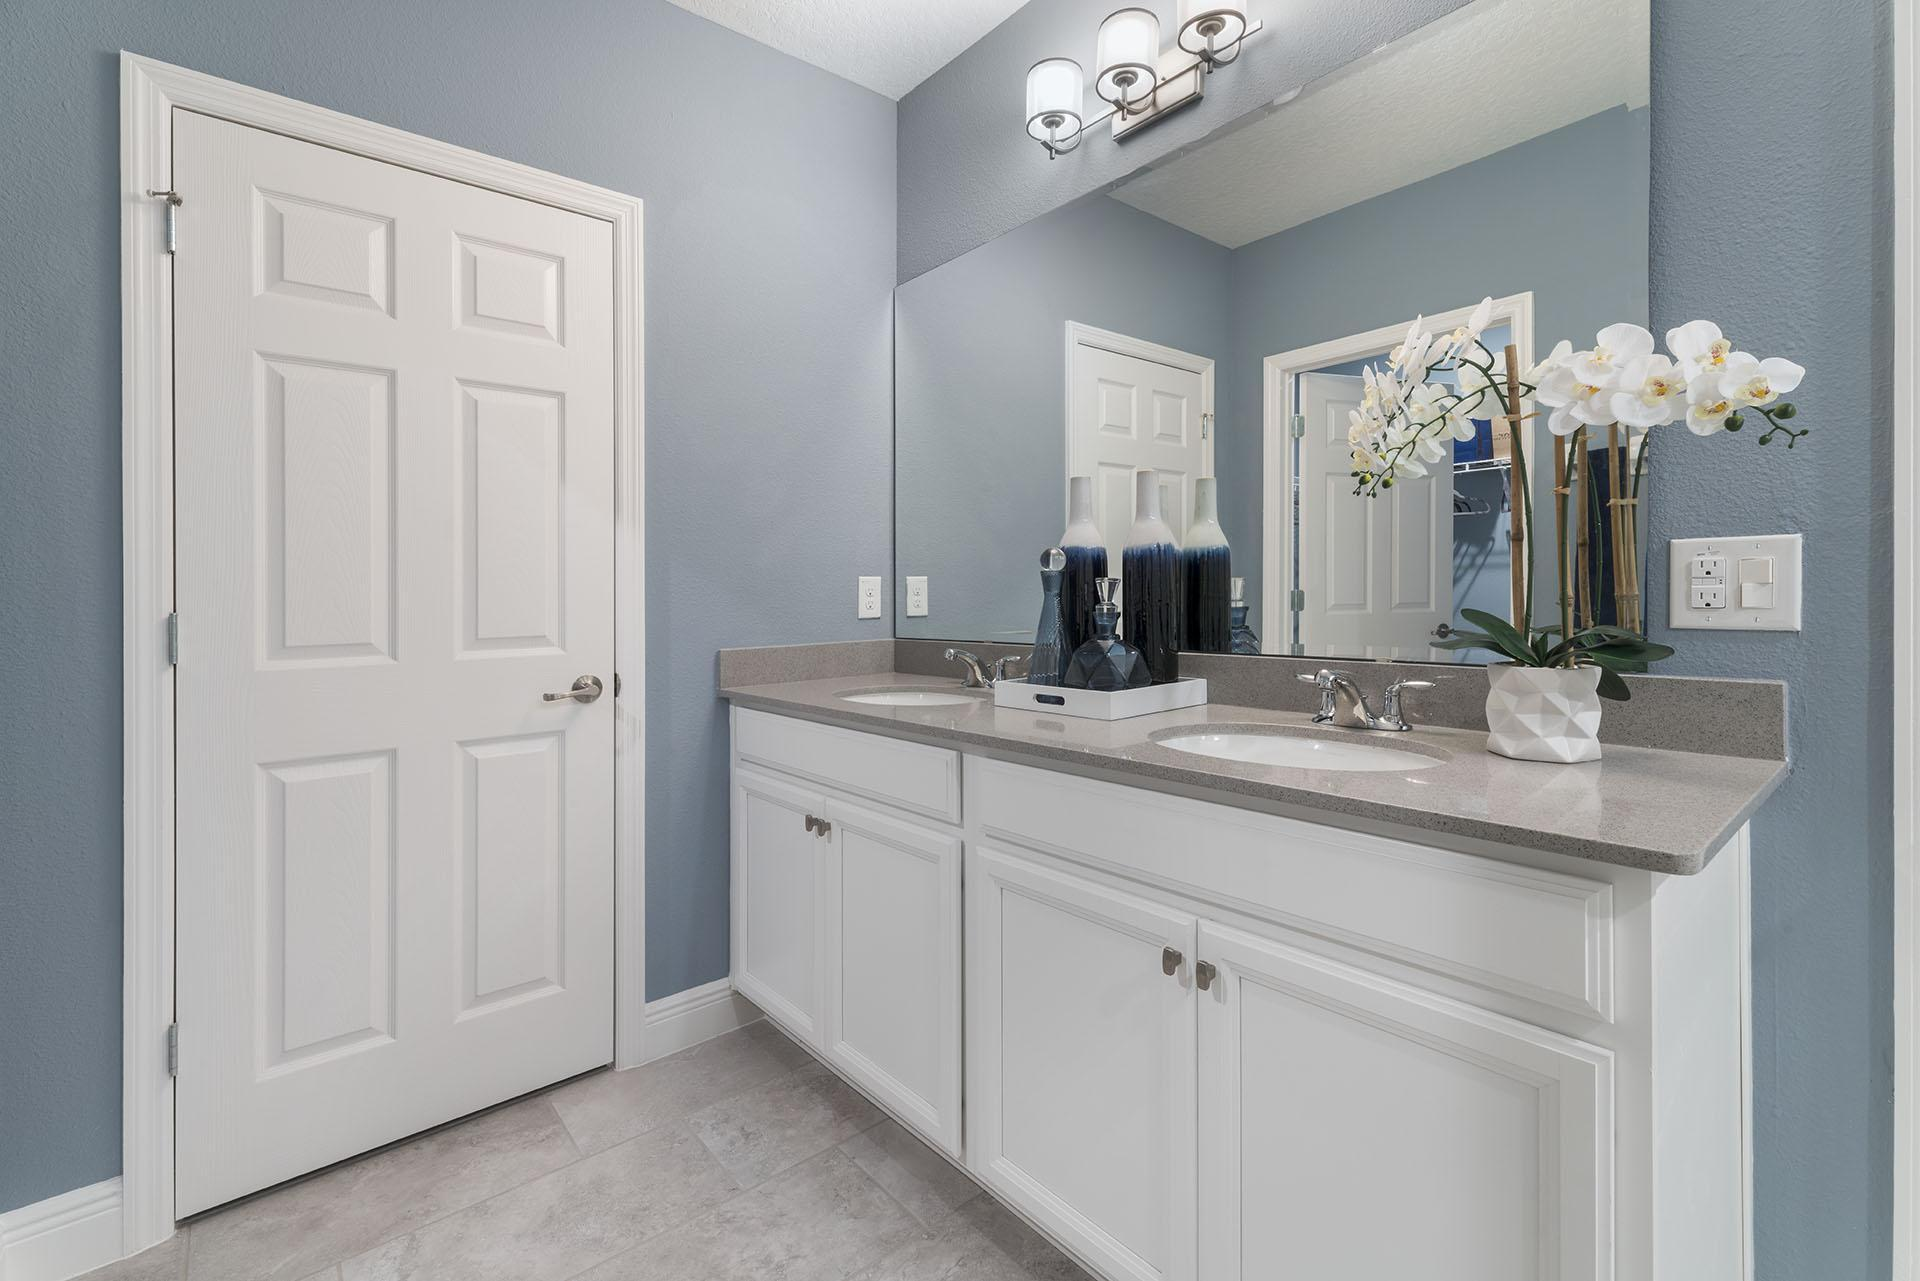 Bathroom featured in the Lexington By Hanover Family Builders in Lakeland-Winter Haven, FL